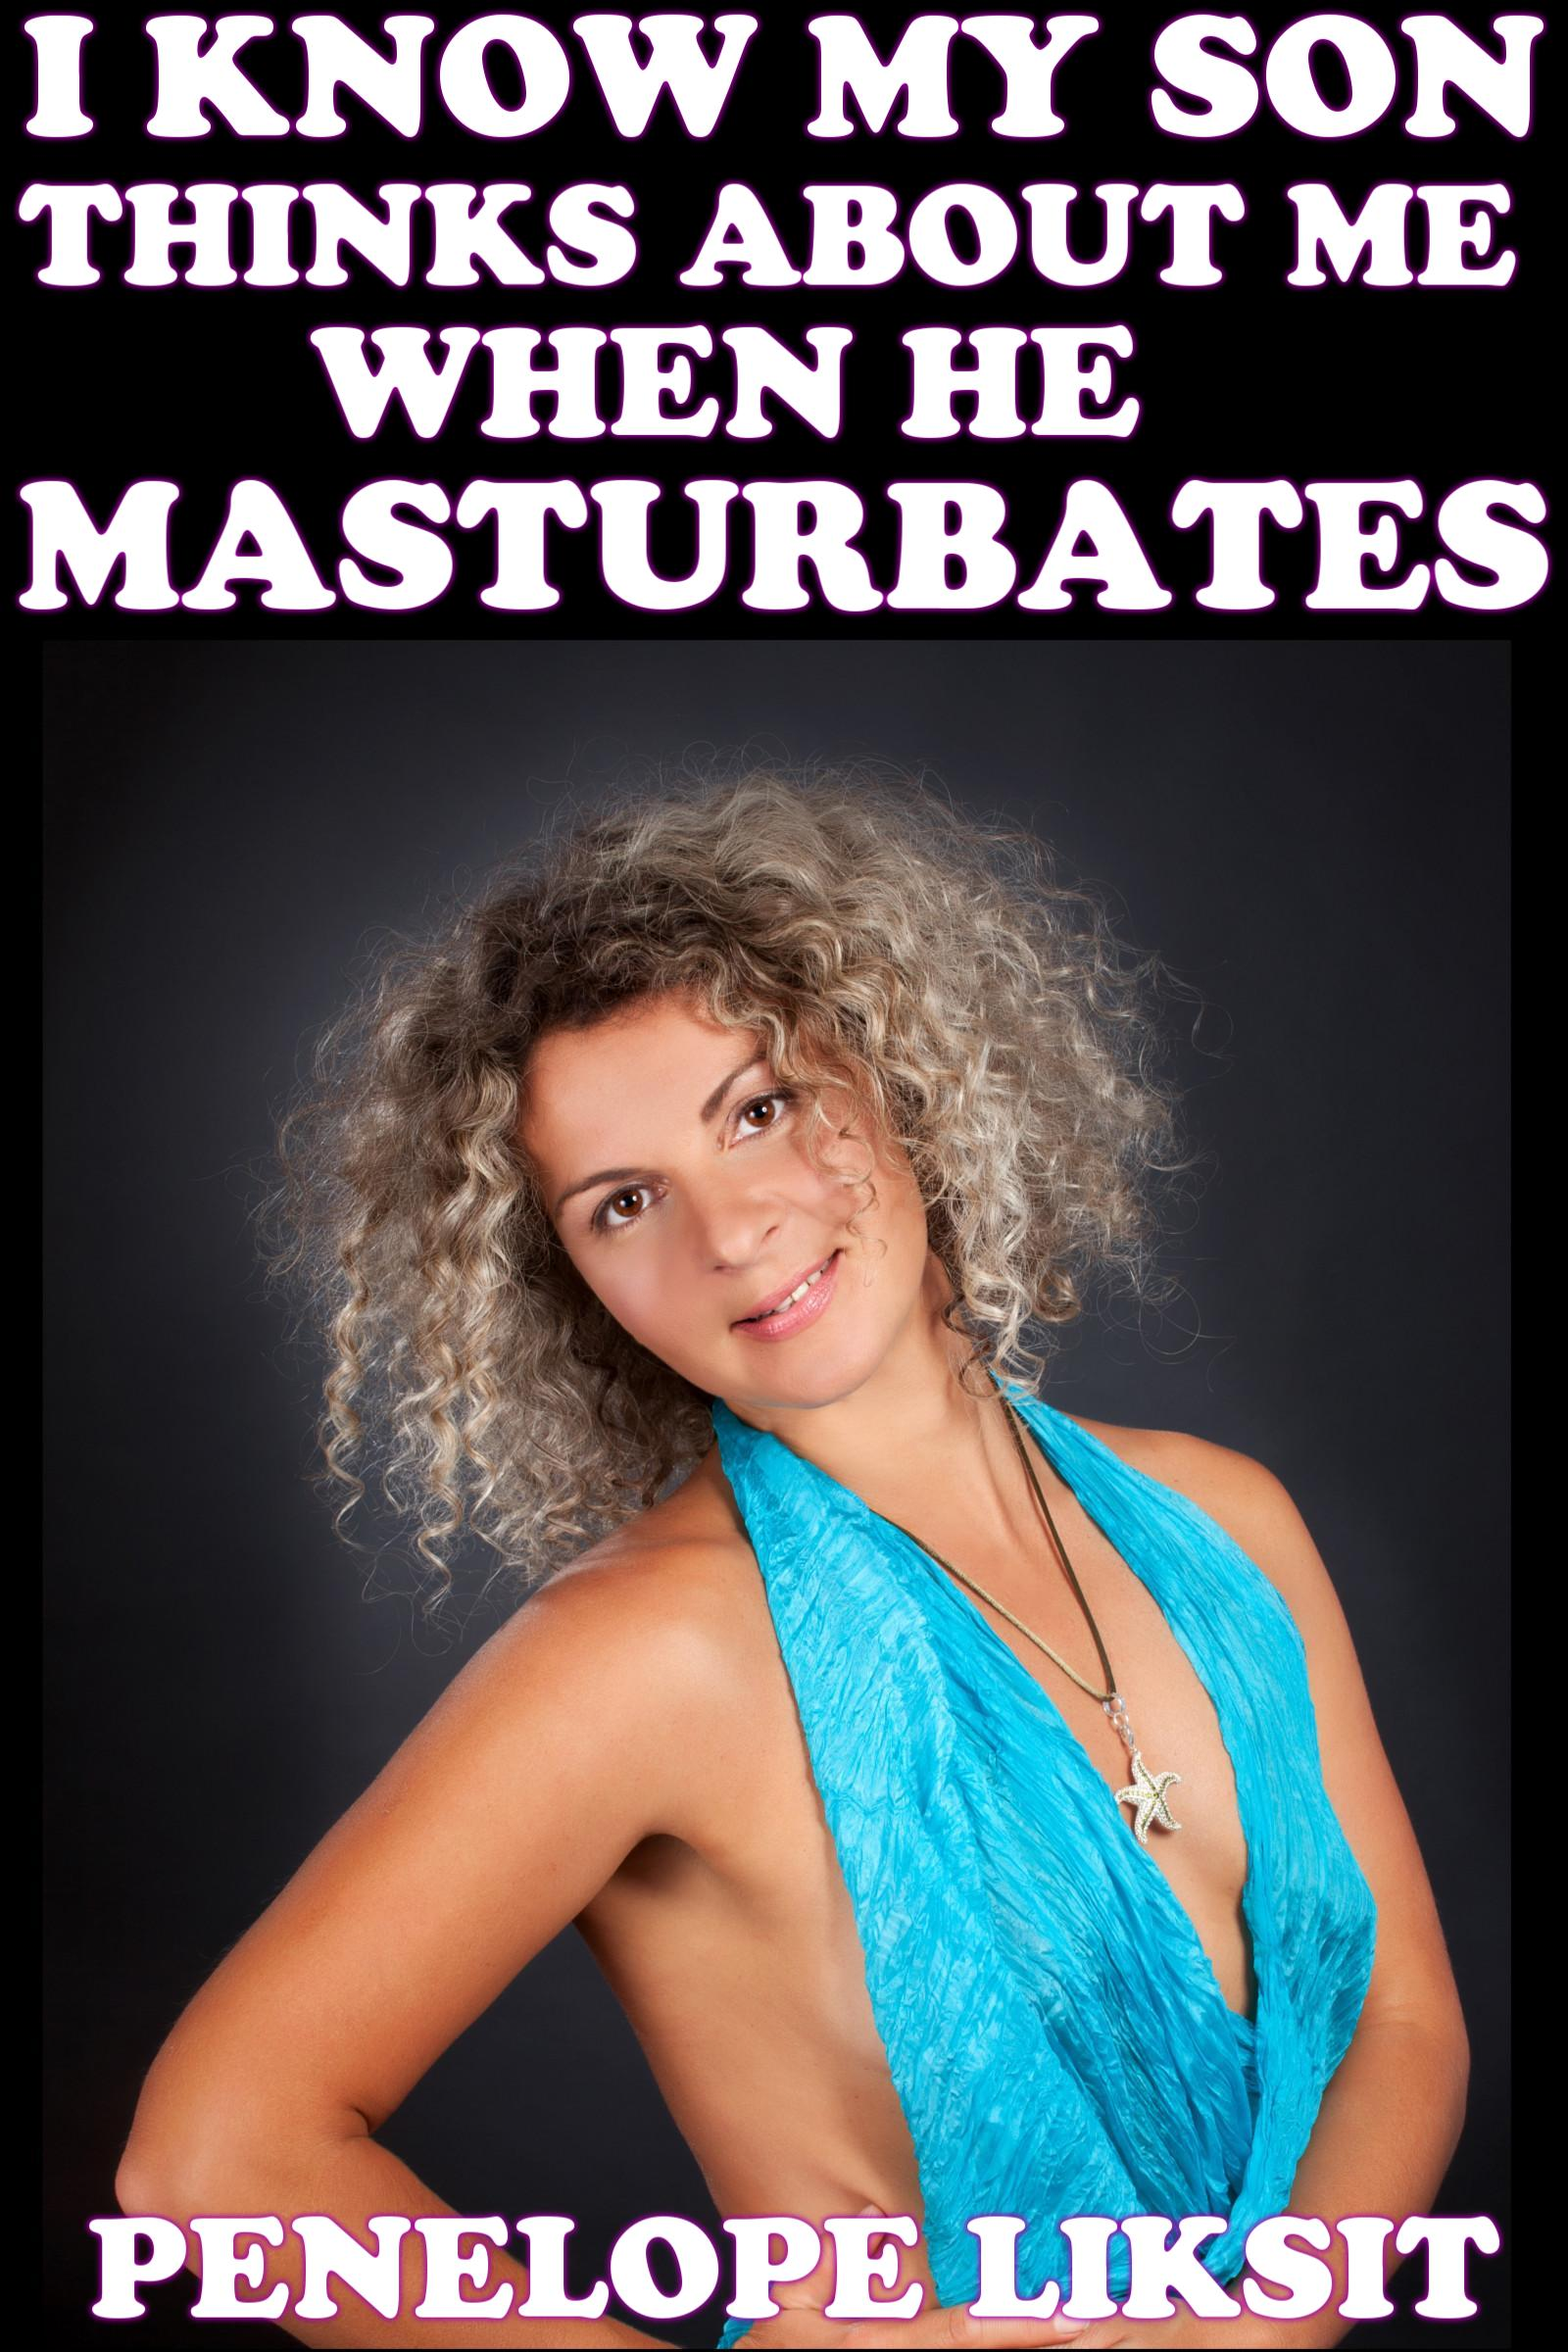 Mthers by secret Masturbation stories